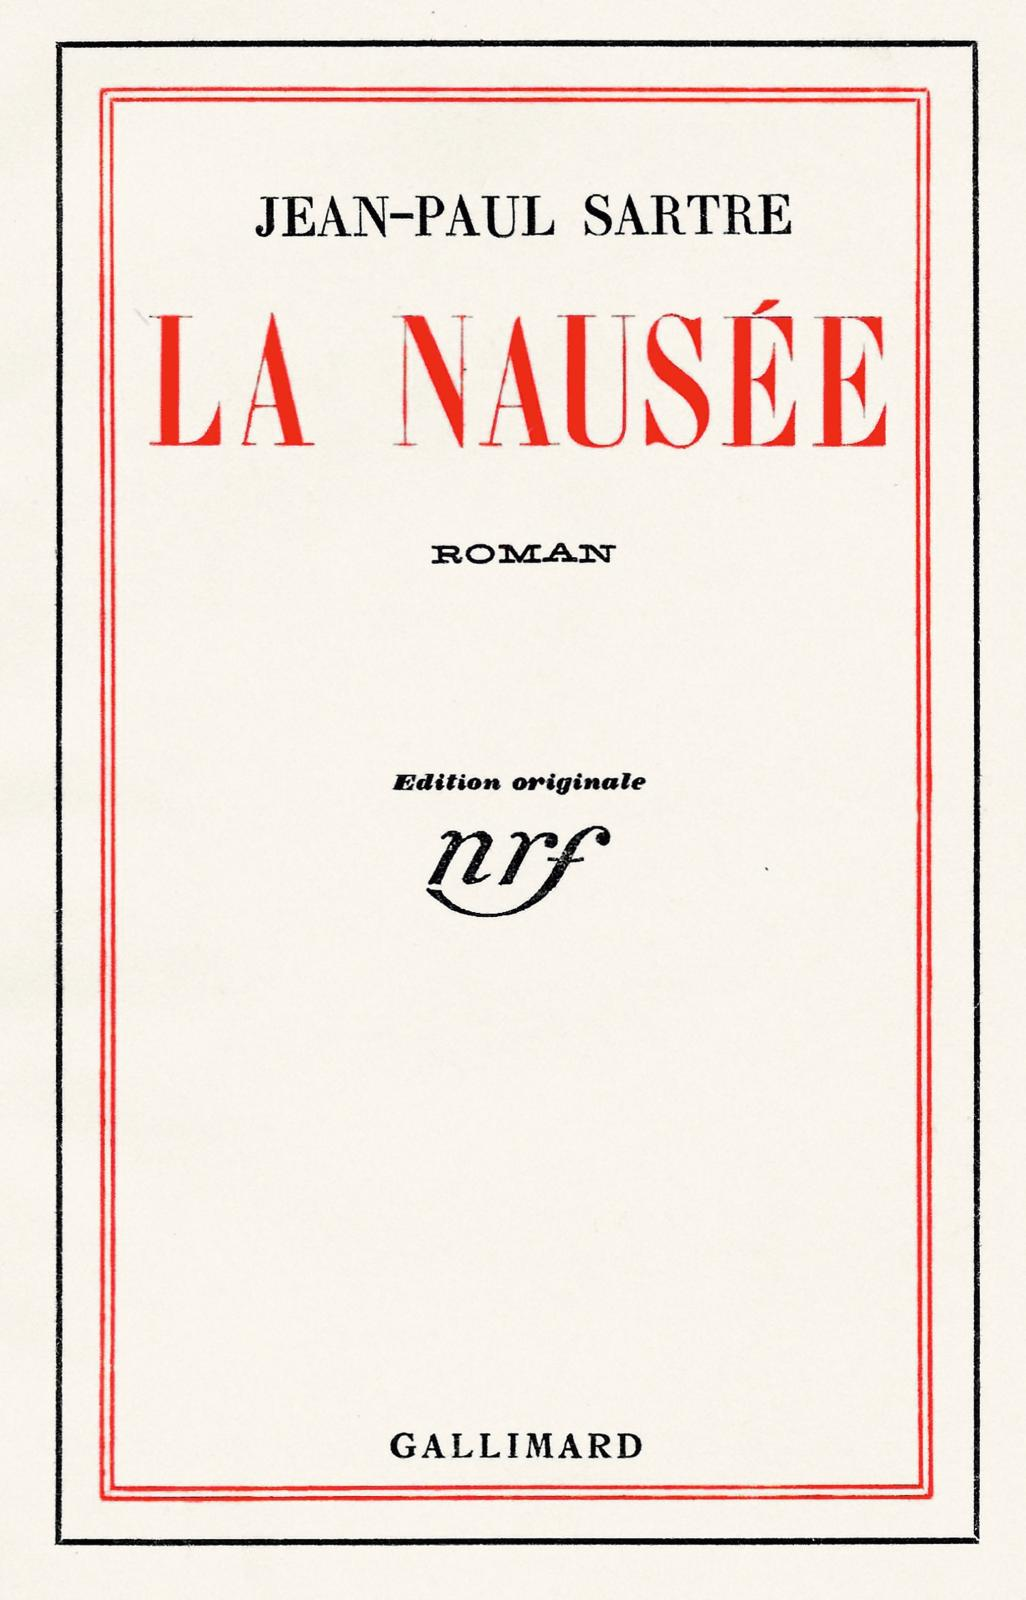 Jean-Paul Sartre (1905-1980), La Nausée (Nausea), Paris, 1938, first edition, one of 23 deluxe copies on all-rag vellum (Bouquinerie Auror